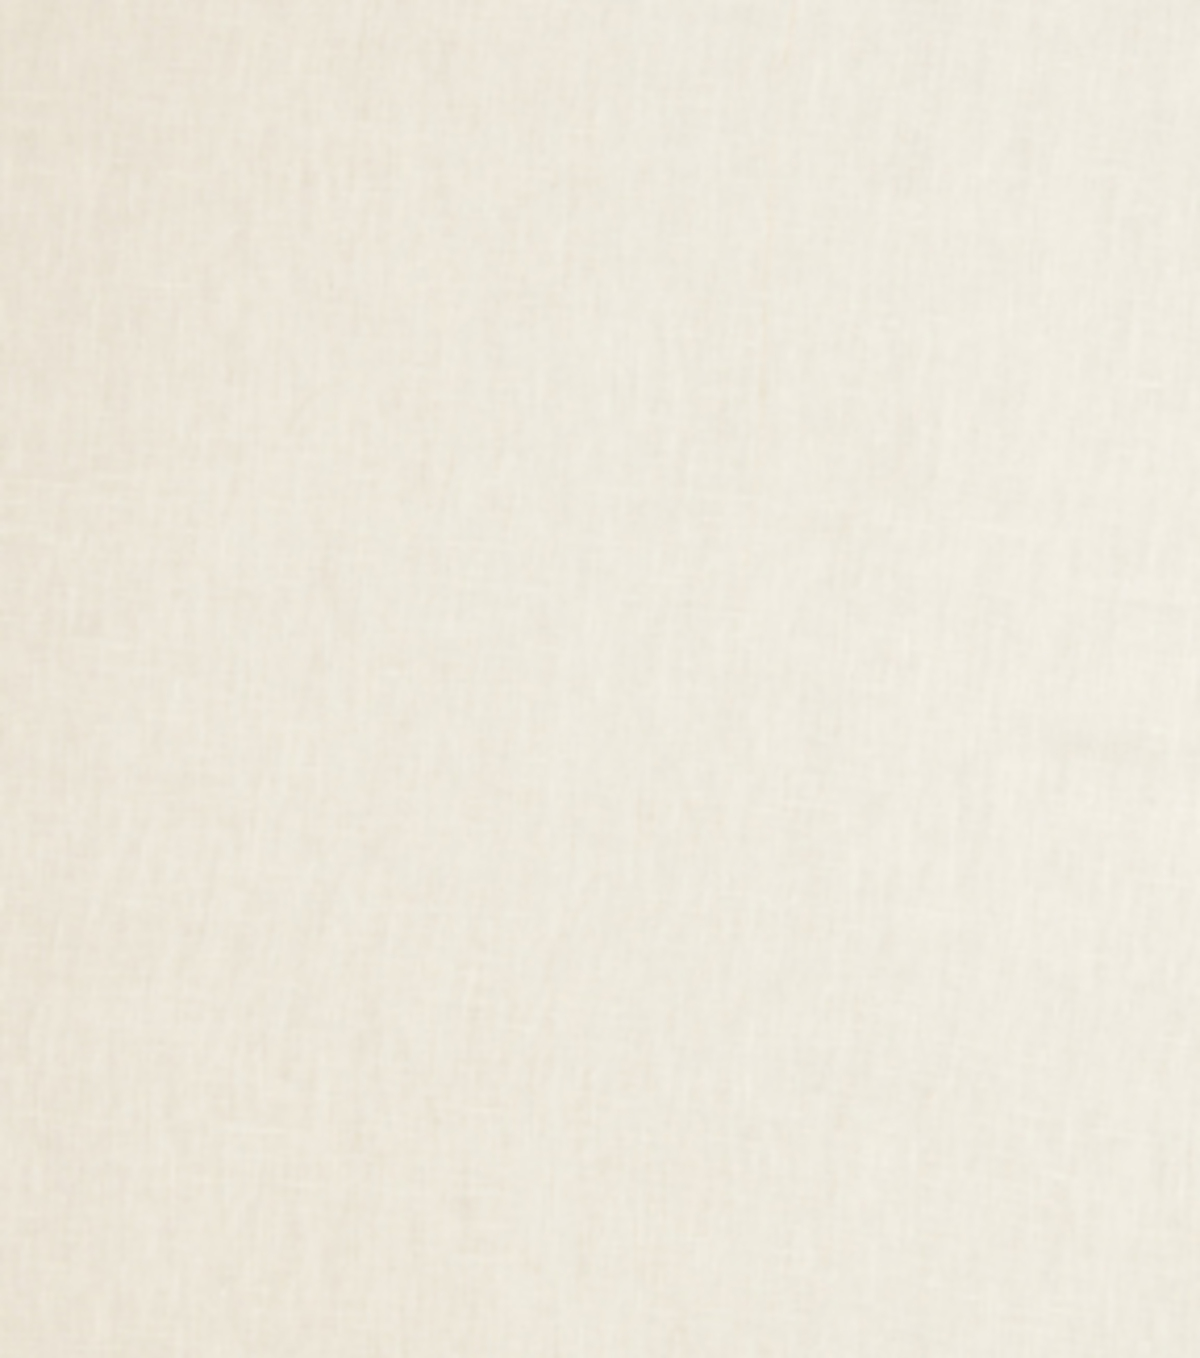 Home Decor 8\u0022x8\u0022 Fabric Swatch-Eaton Square Croissant Ivory